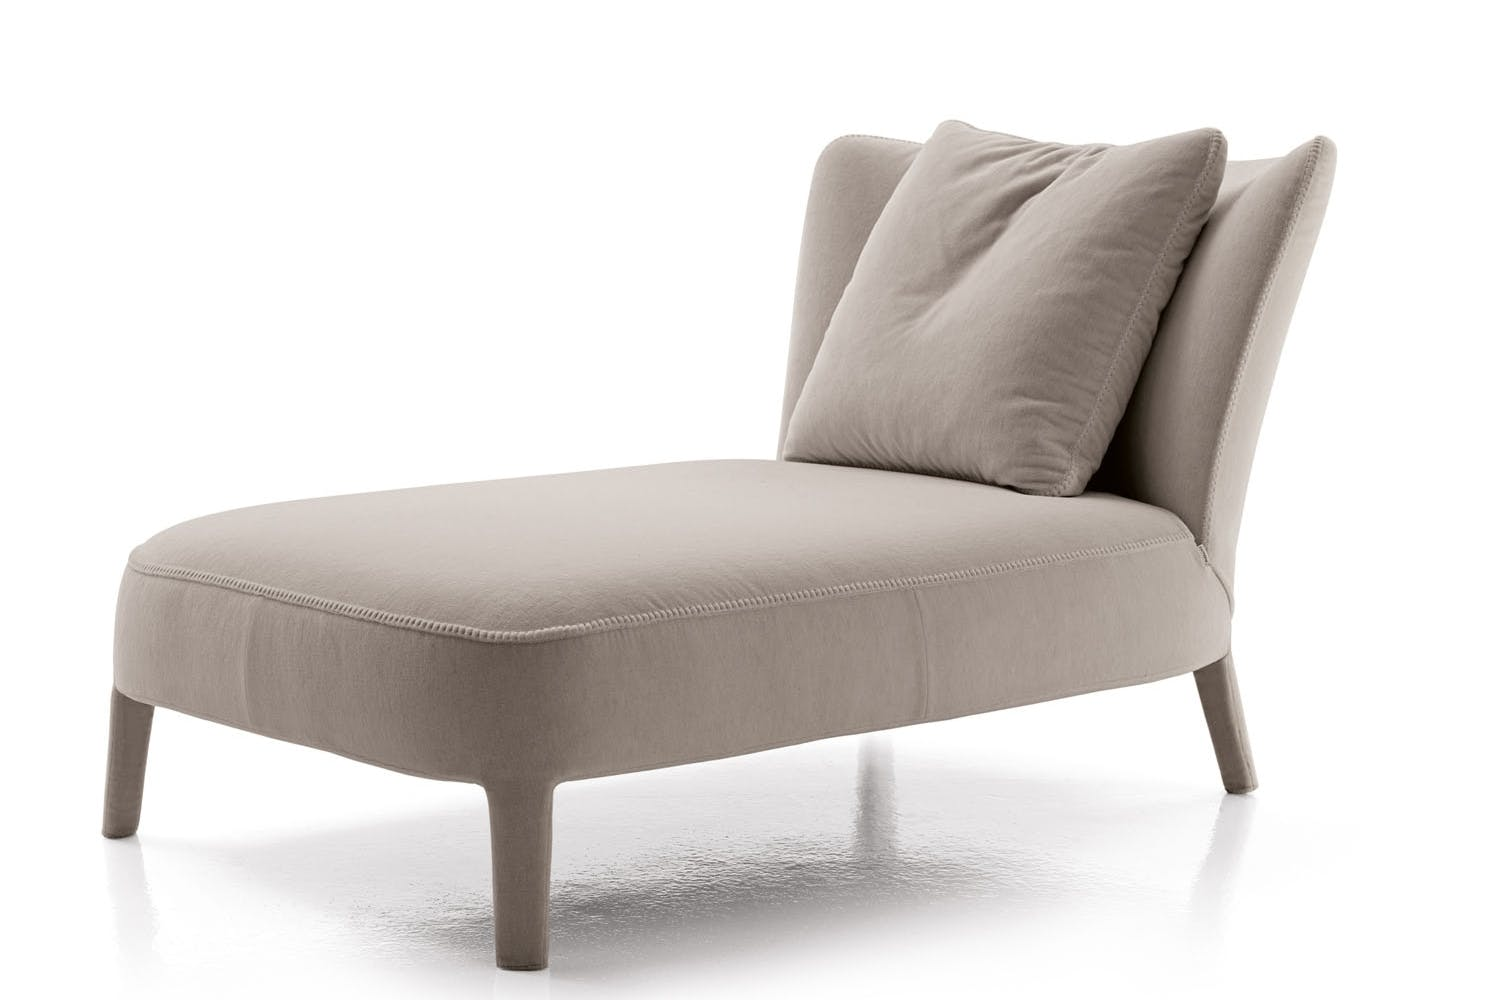 Febo chaise longue by antonio citterio for maxalto space for Chaise furniture